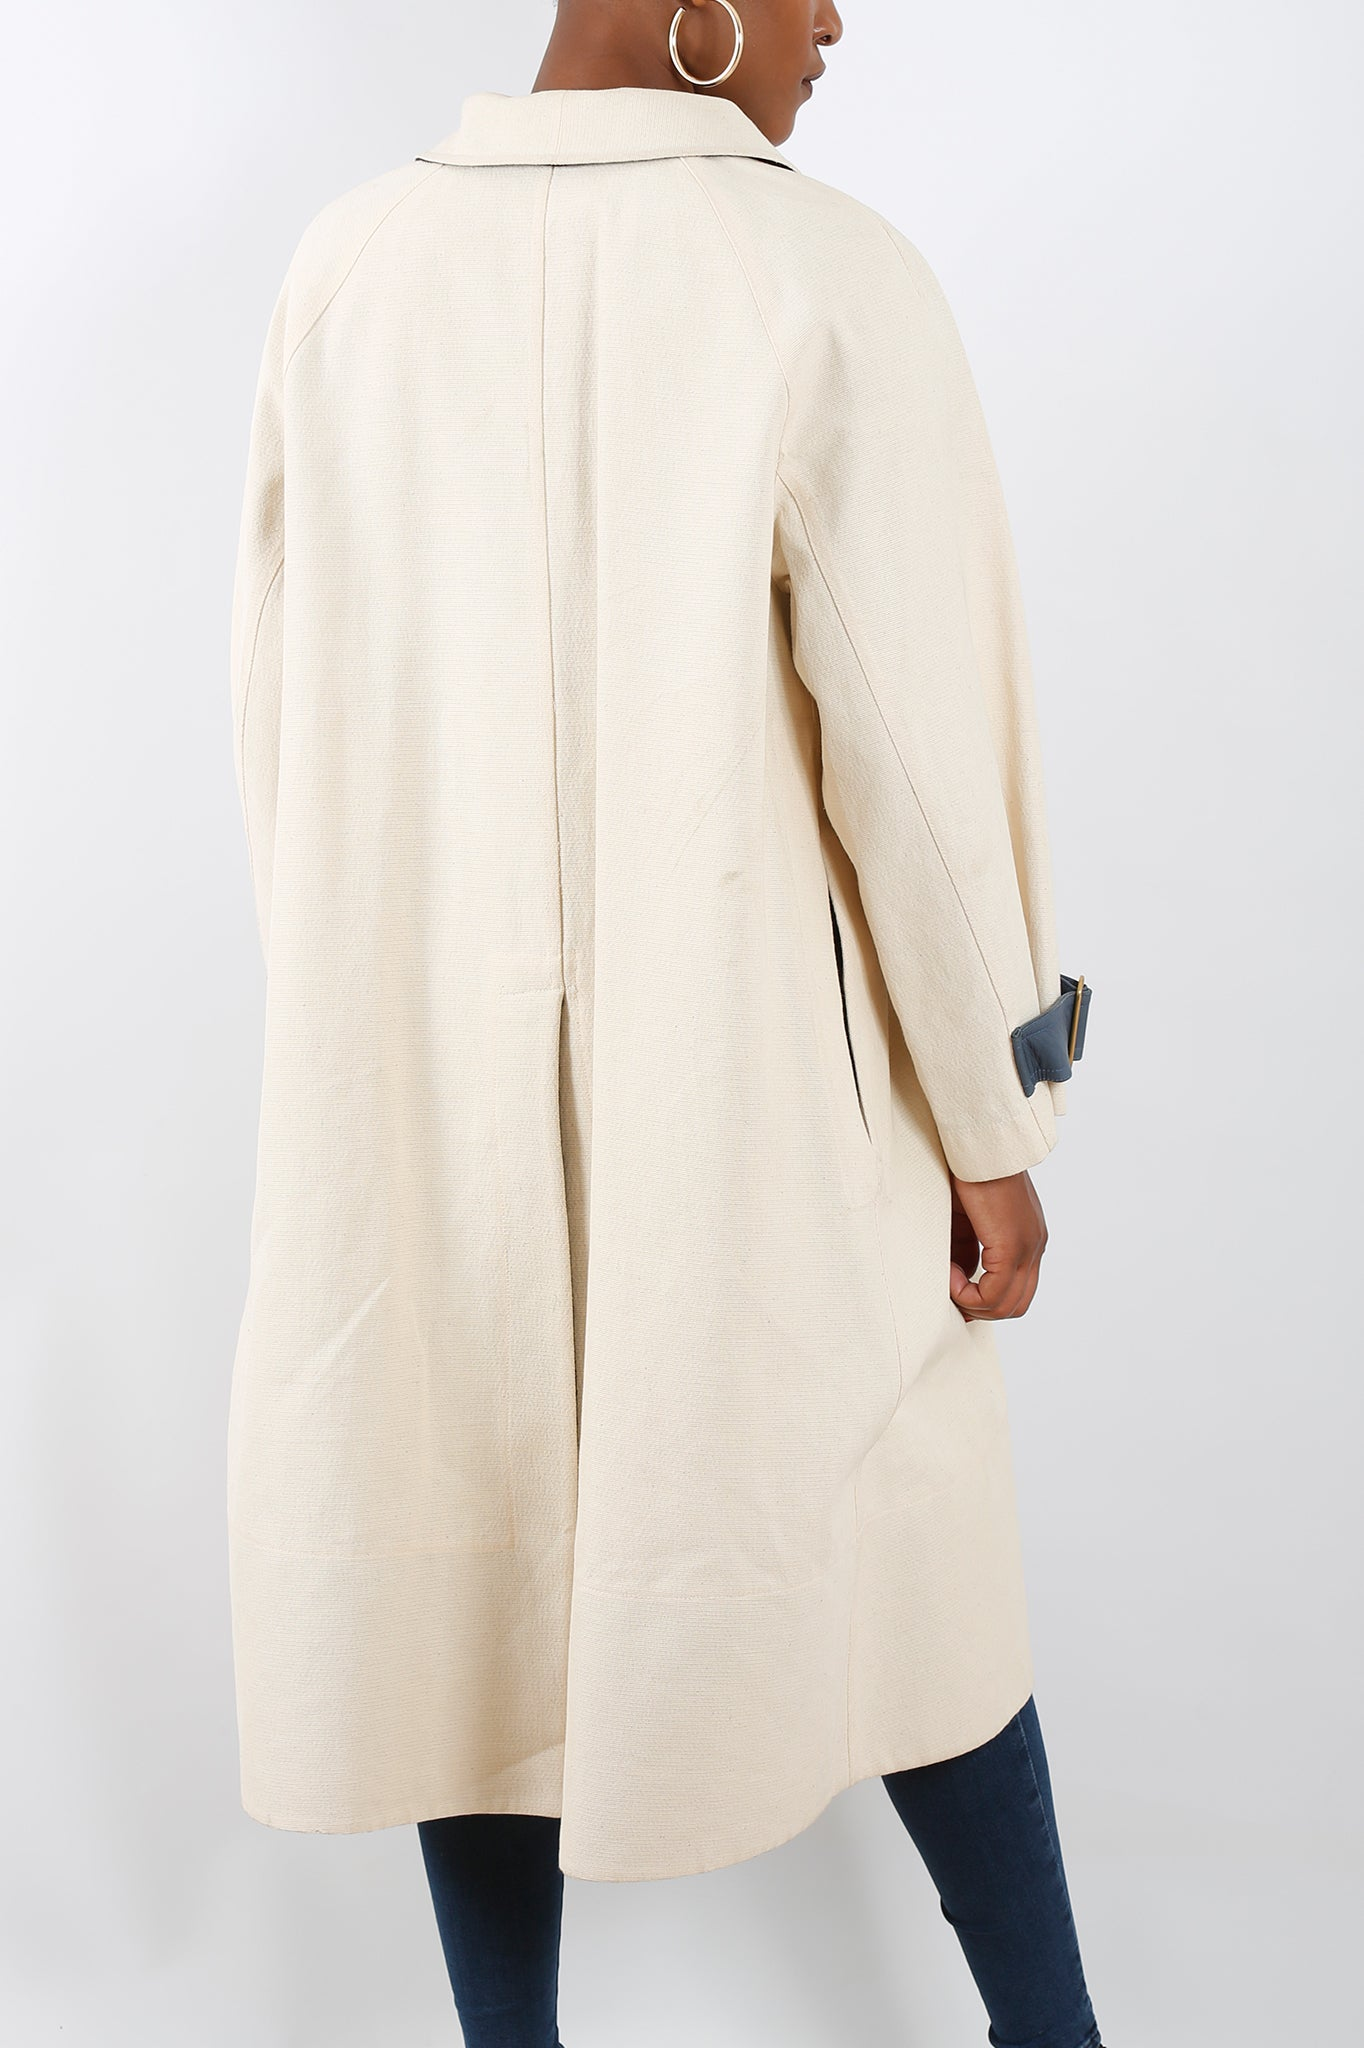 Cyrus Canvas Coat in White